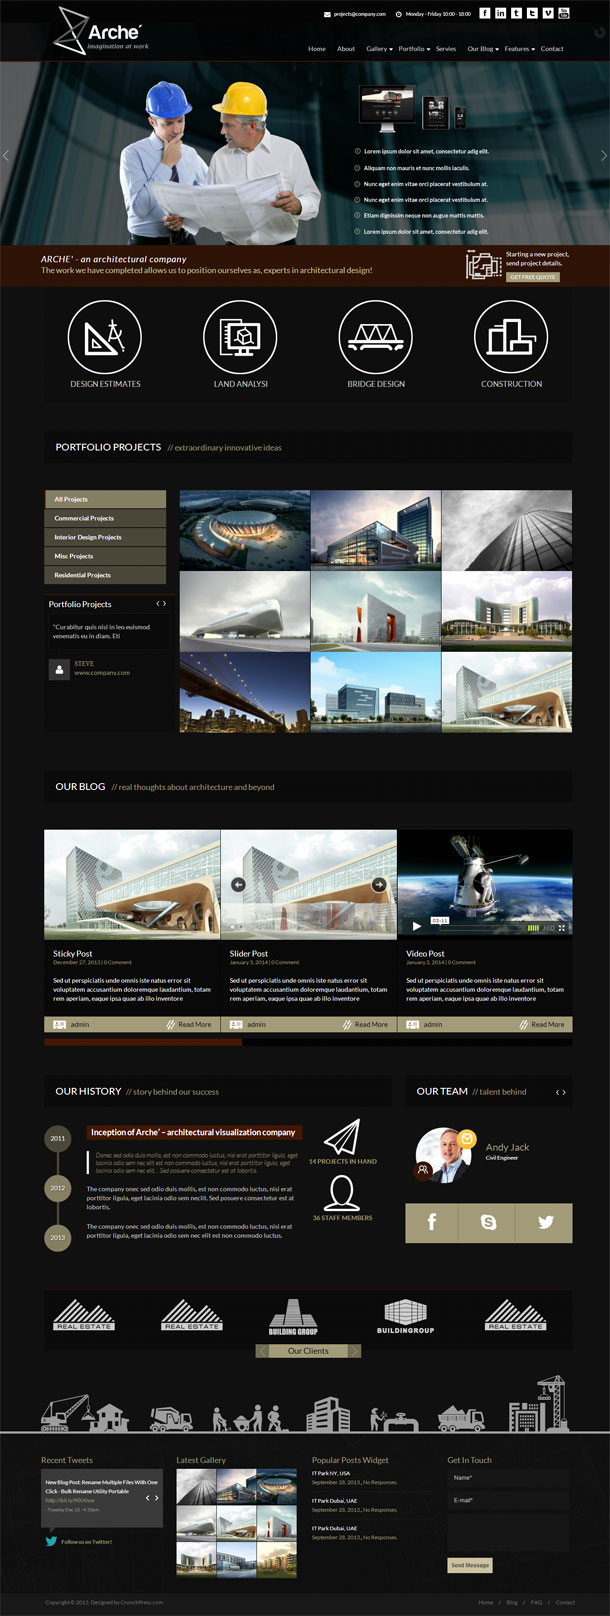 Arche Best WP Construction Company Theme Image